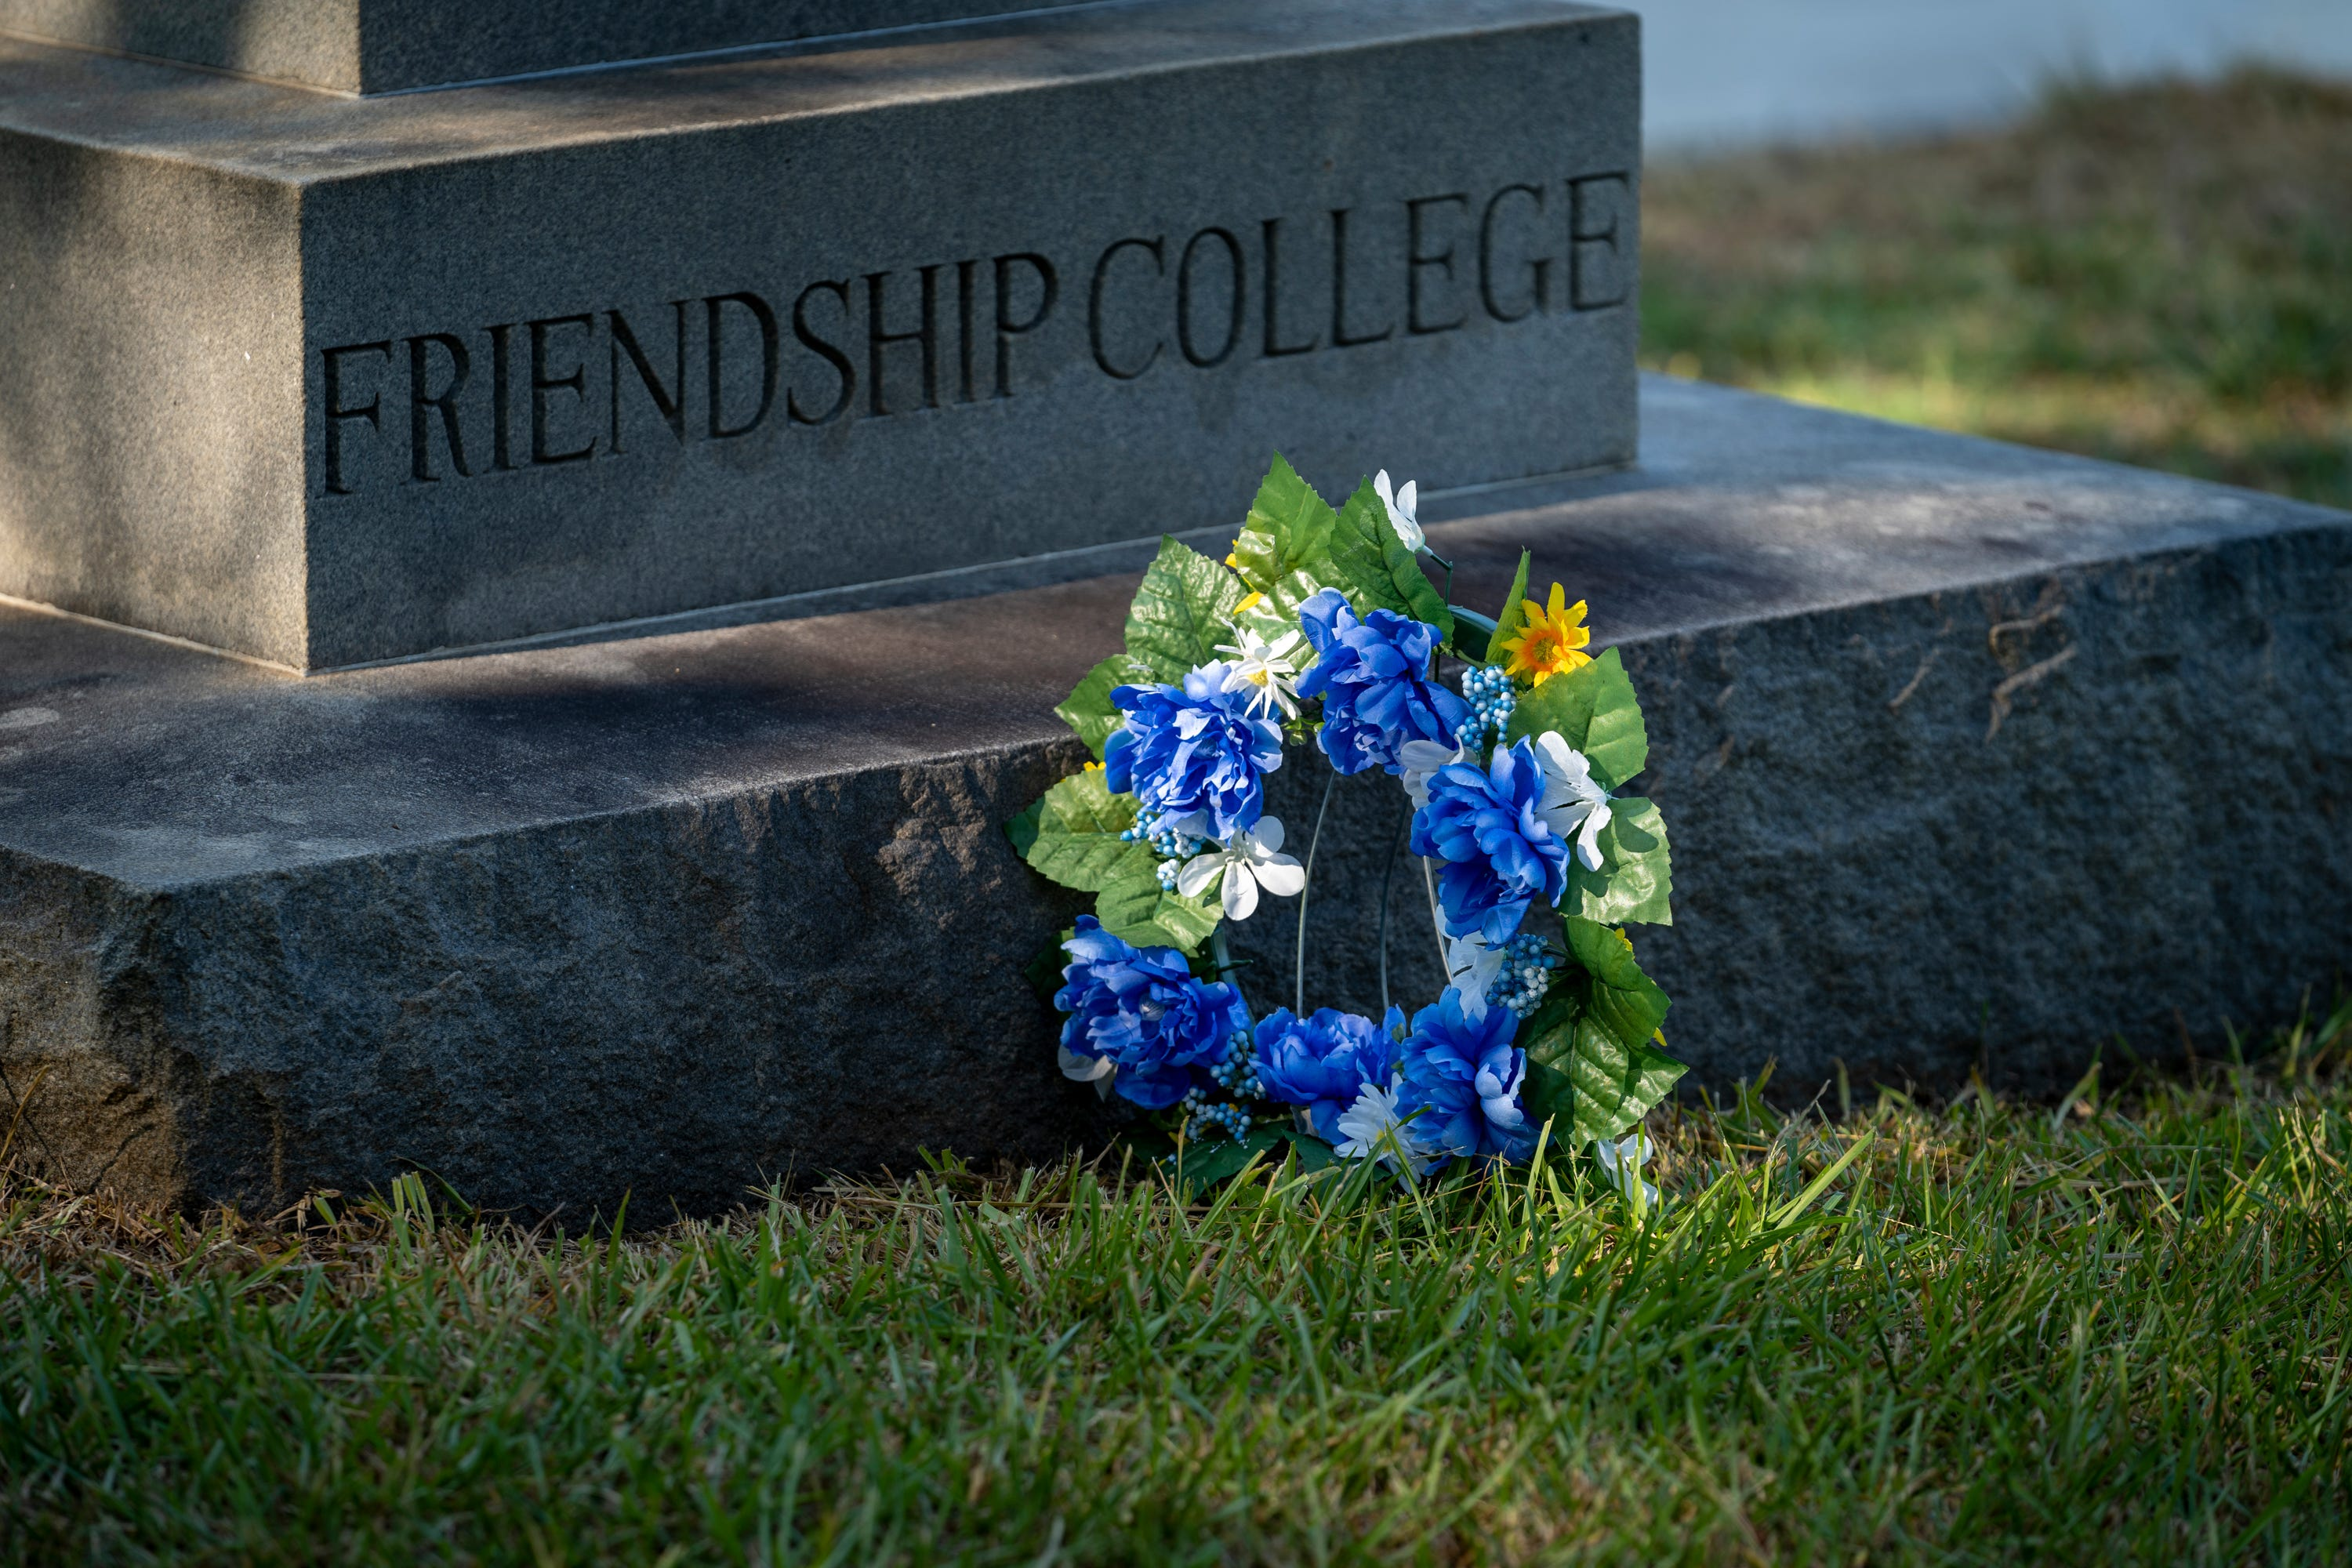 A marker memorialized Friendship College in Rock Hill, S.C., on Aug. 12, 2021.